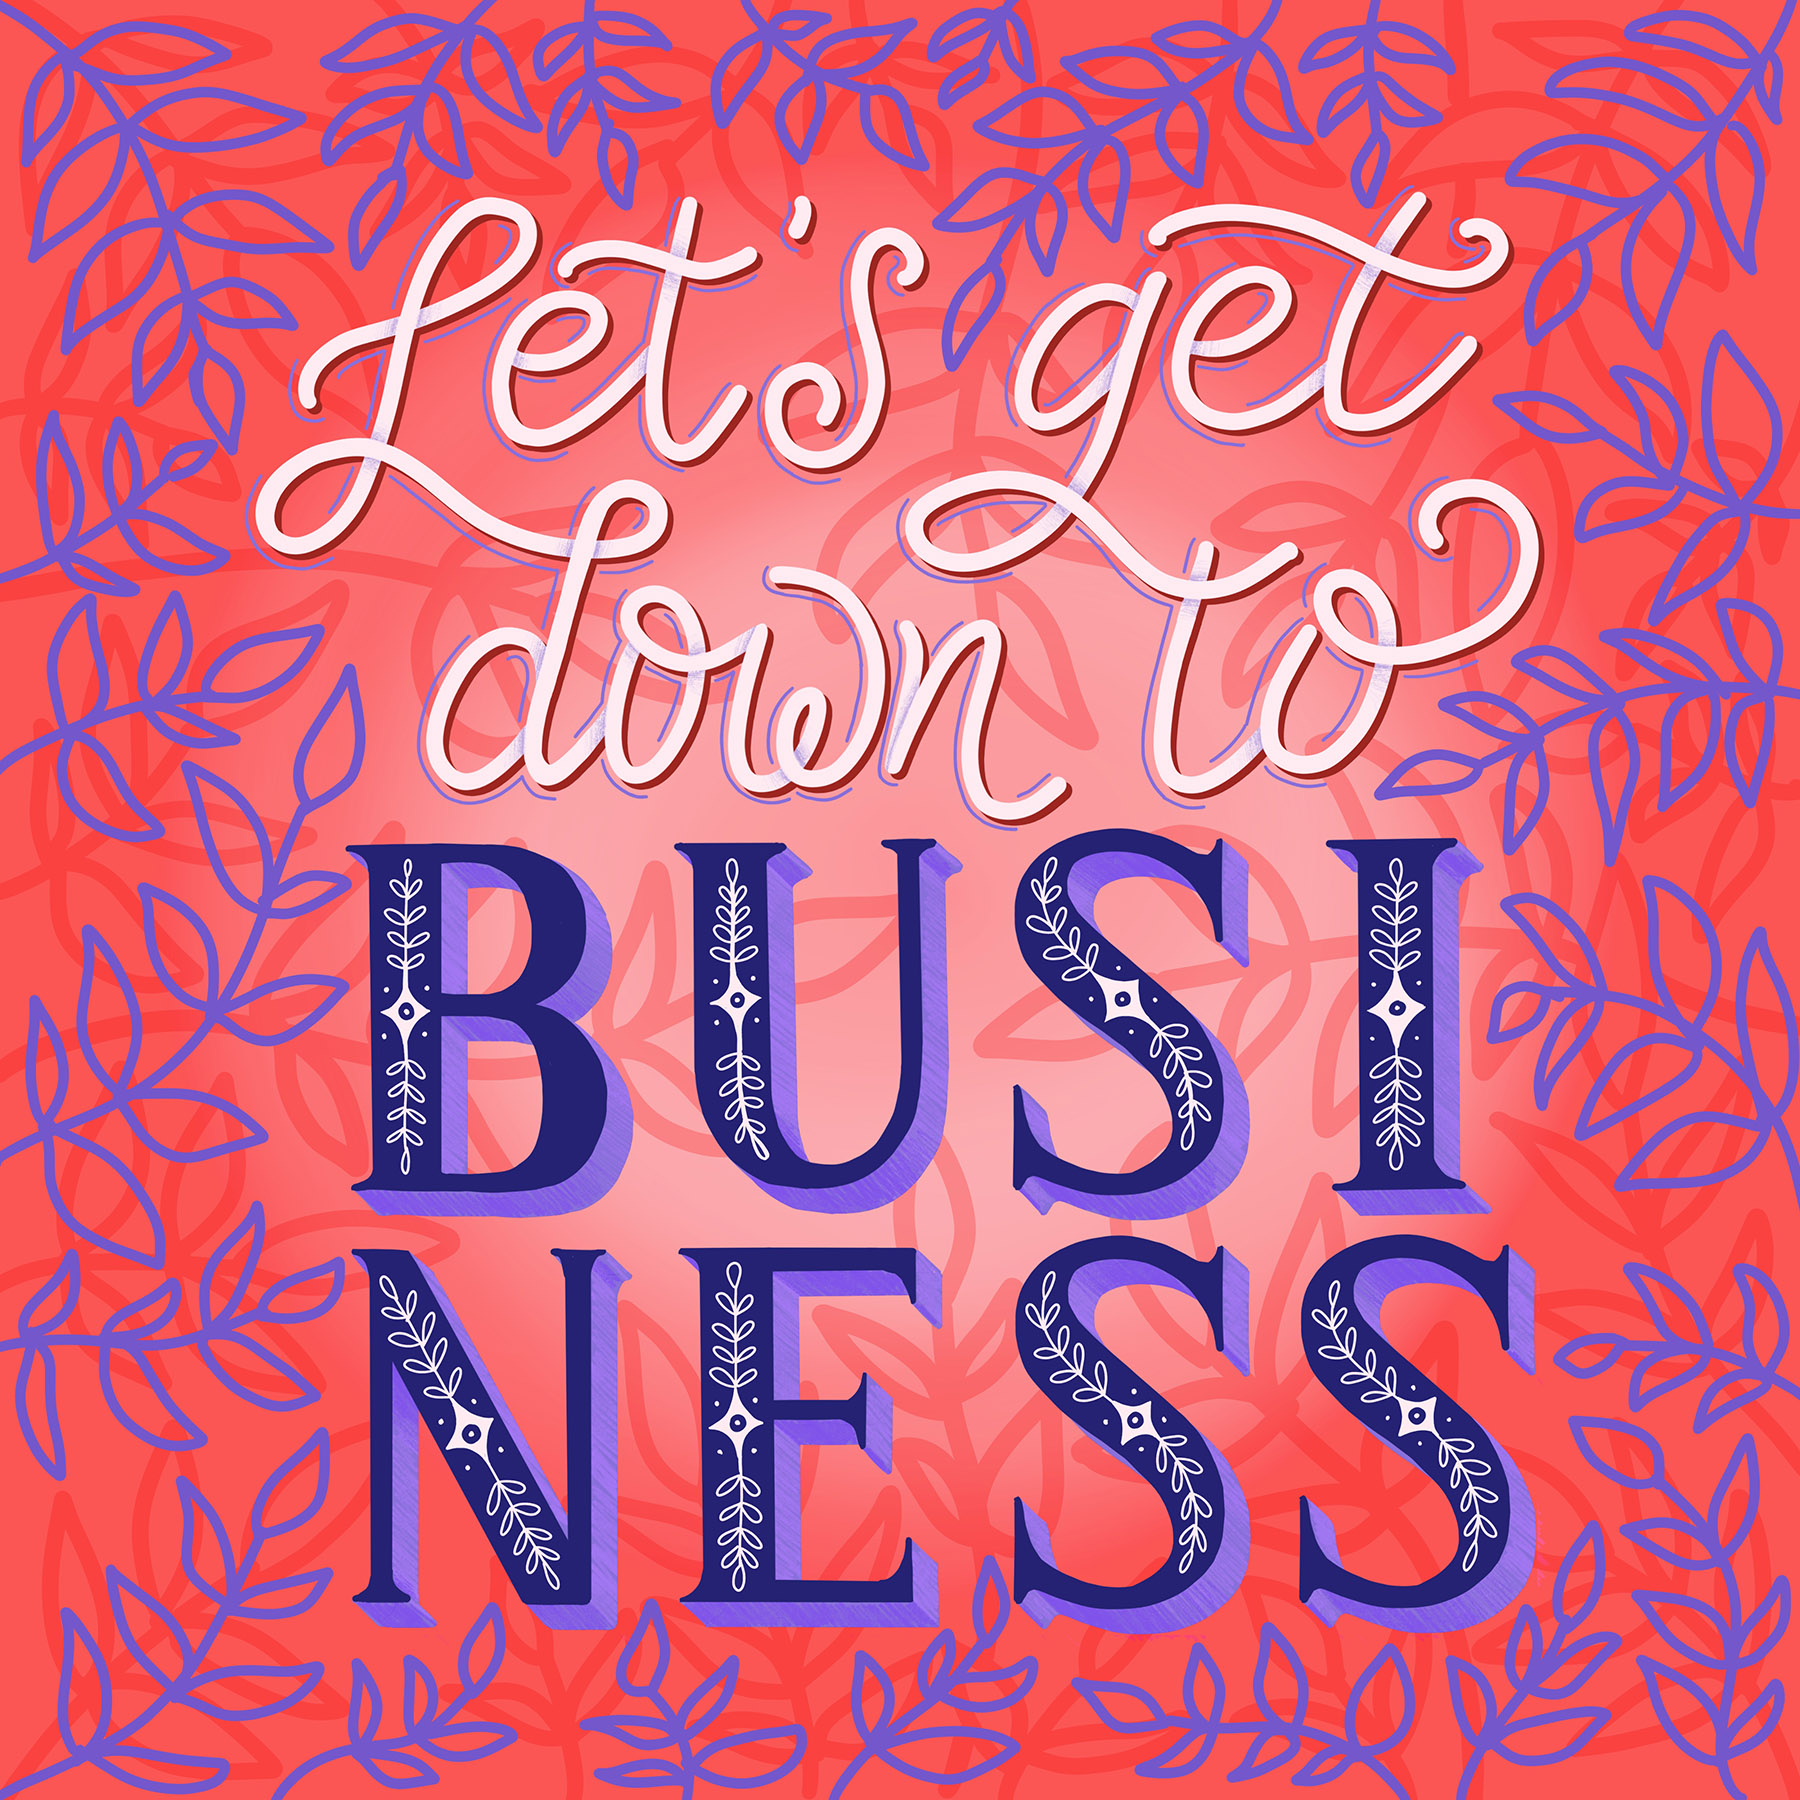 Down to Business Lettering Illustration